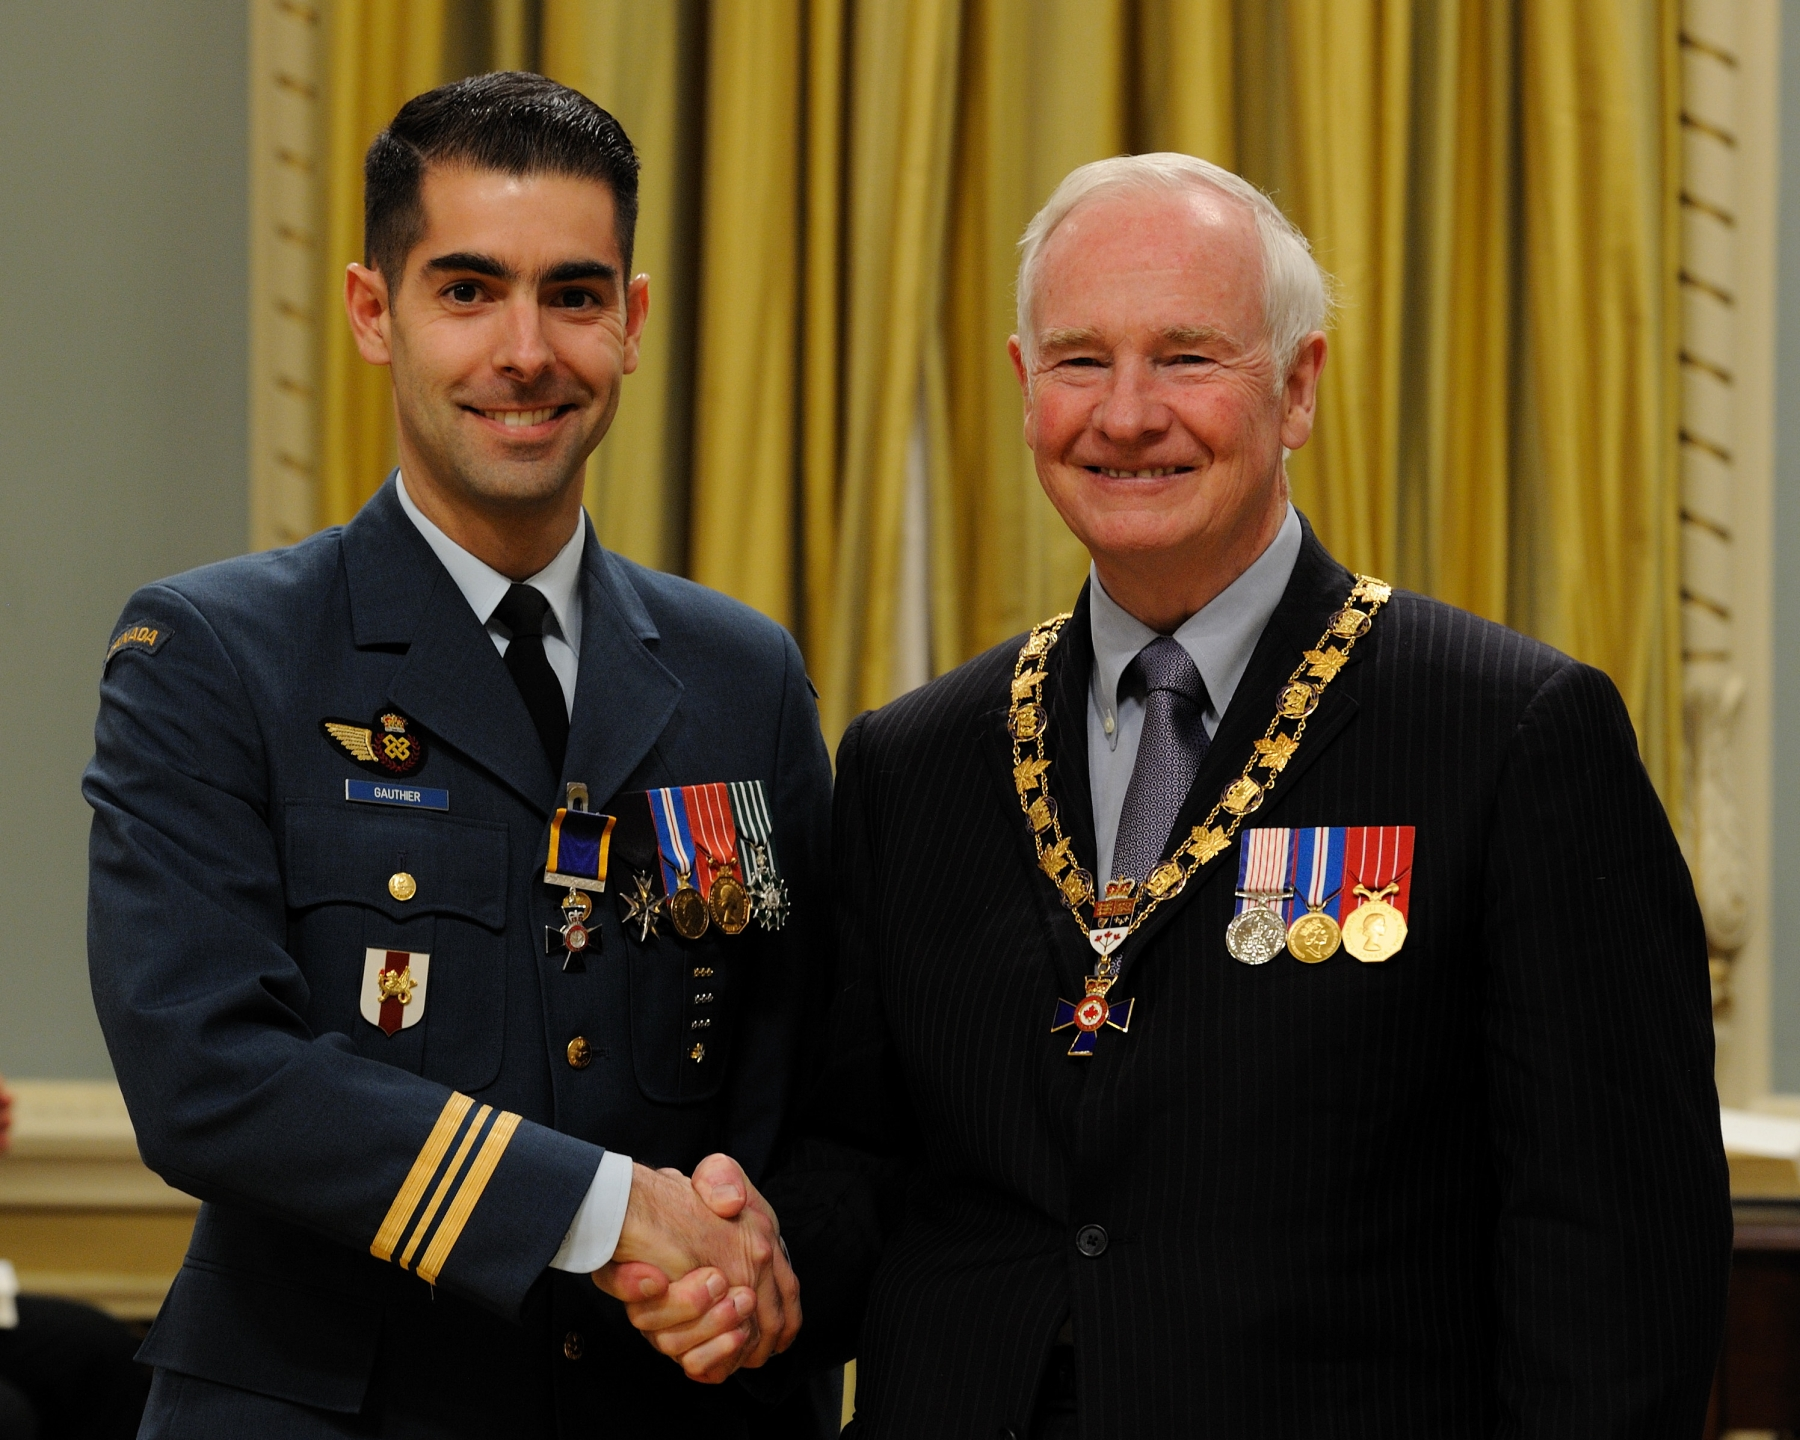 His Excellency presented the Order of Military Merit at the Member level (M.M.M.) to Major Carl Gauthier, M.M.M., C.D., Directorate of Honours and Recognition, Ottawa, Ontario.